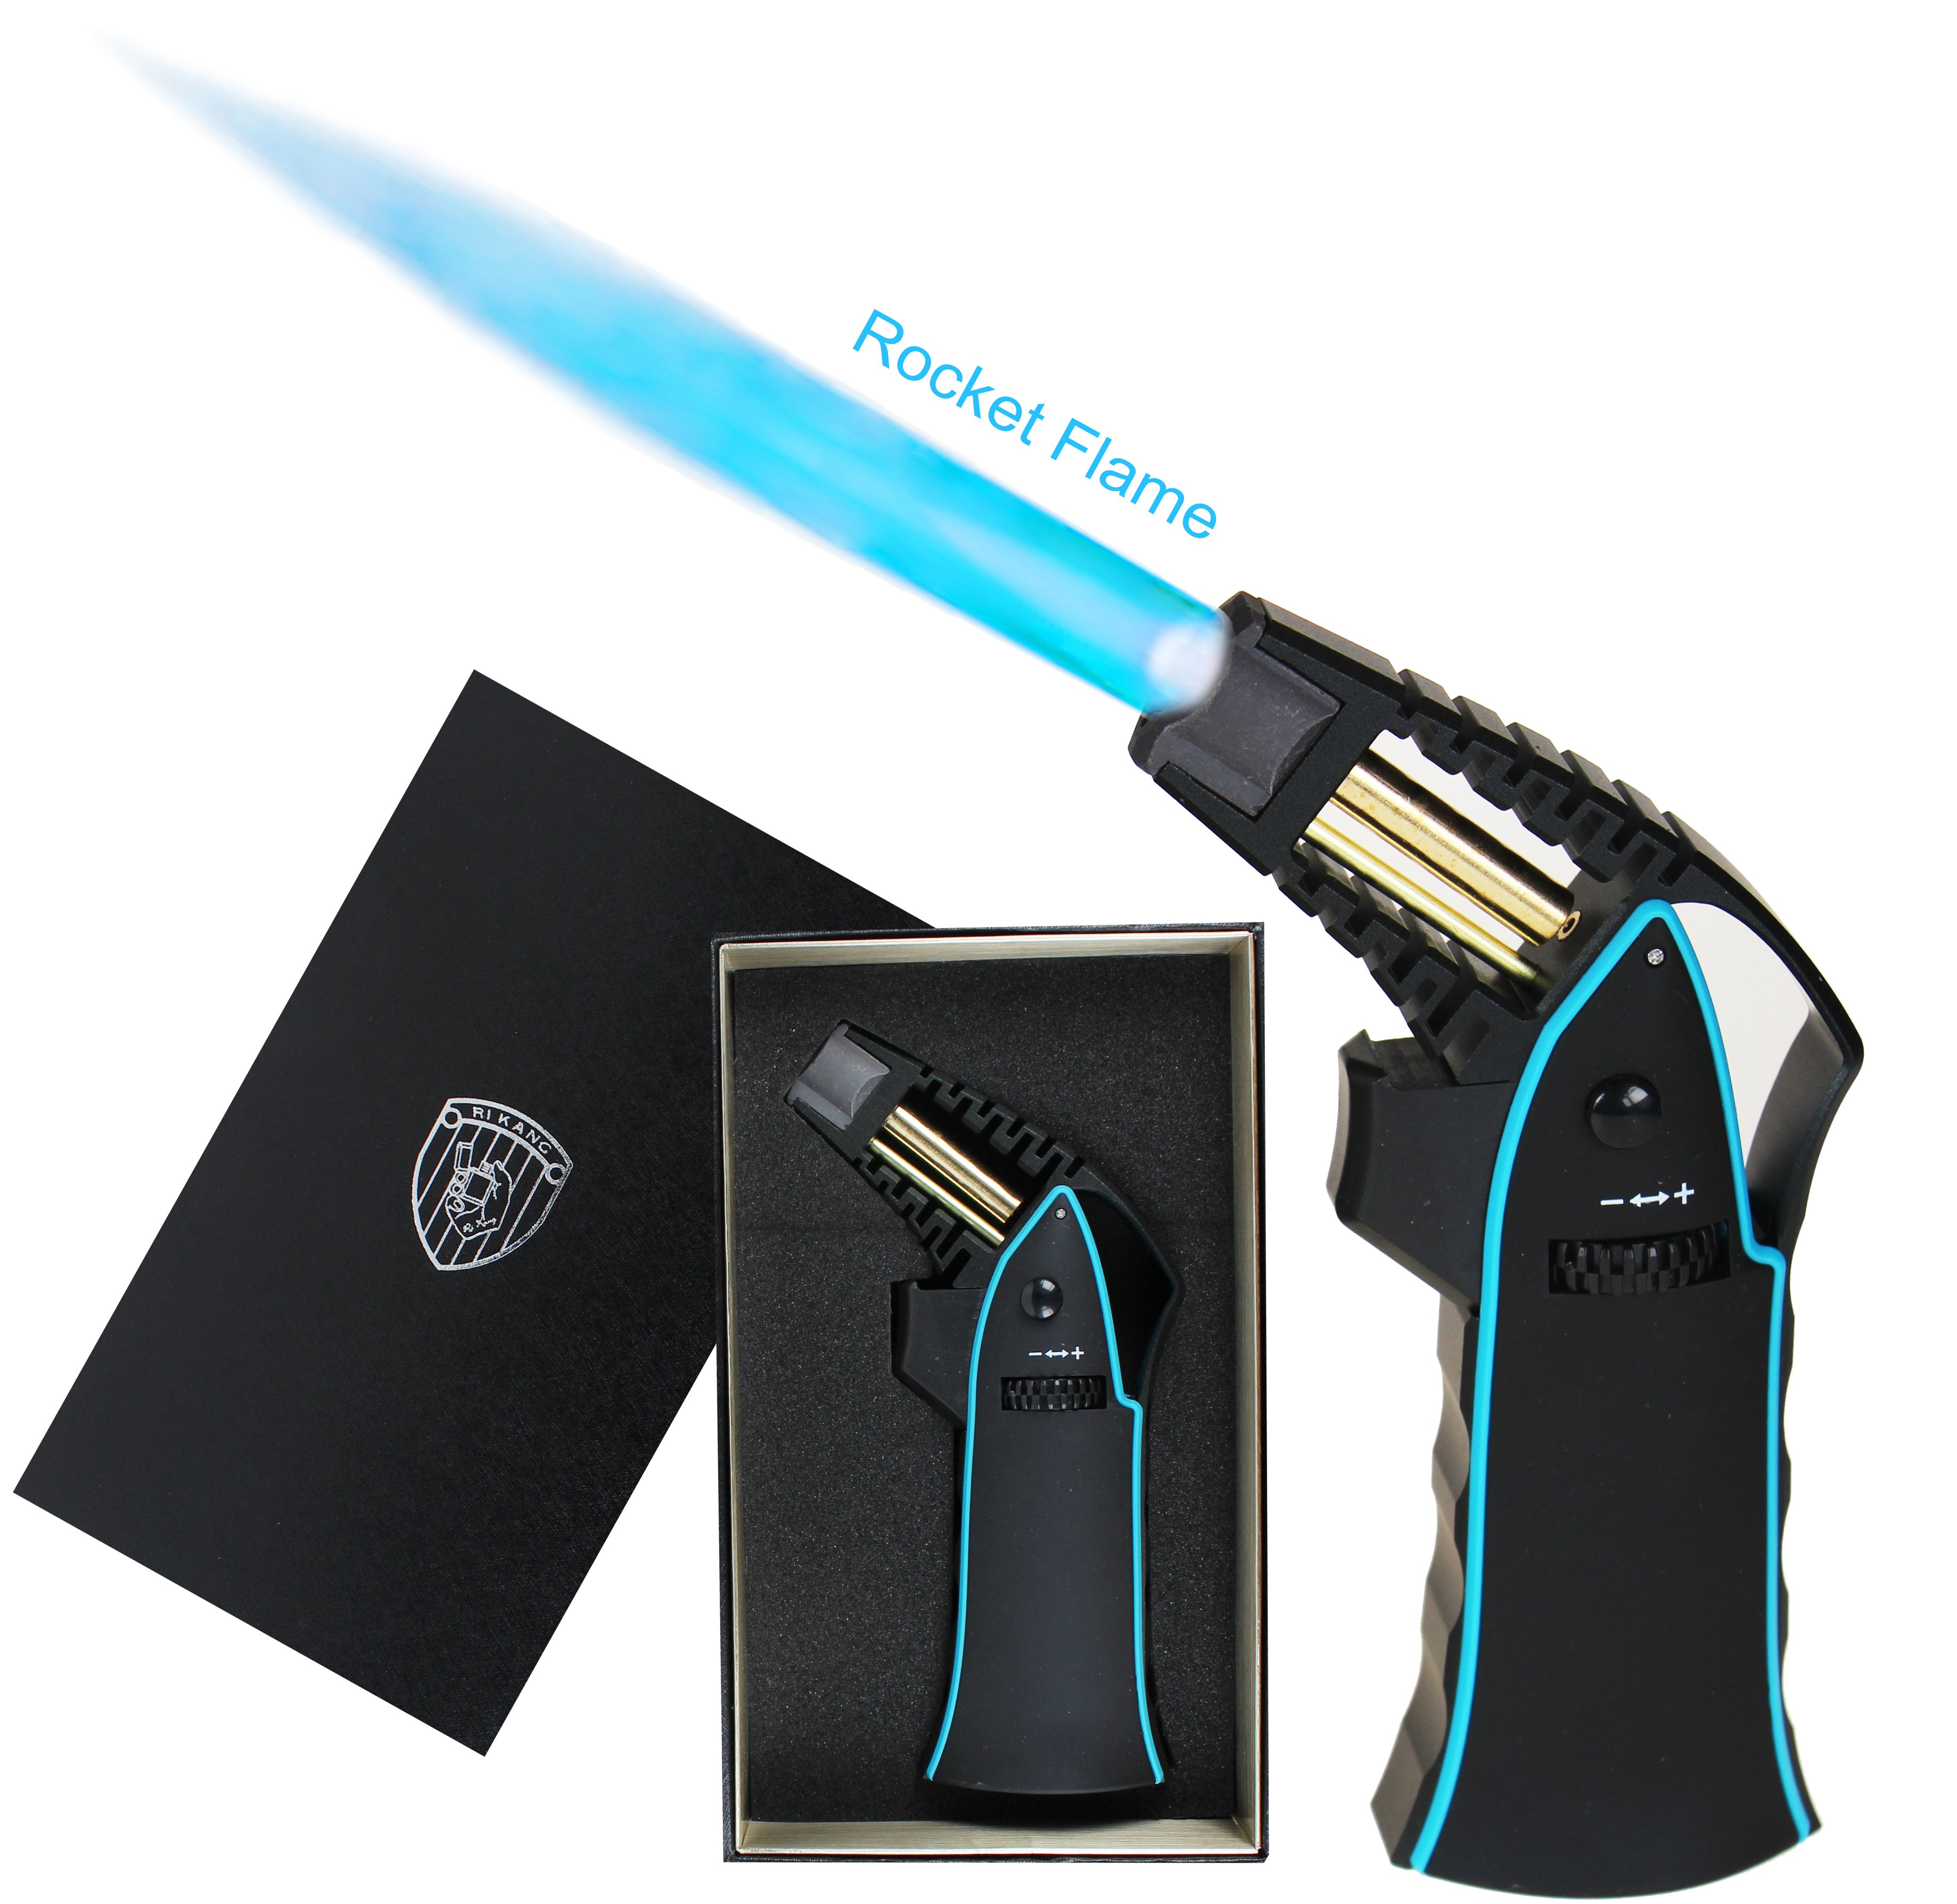 Premium Rocket Jet Flame Lighter - Blue